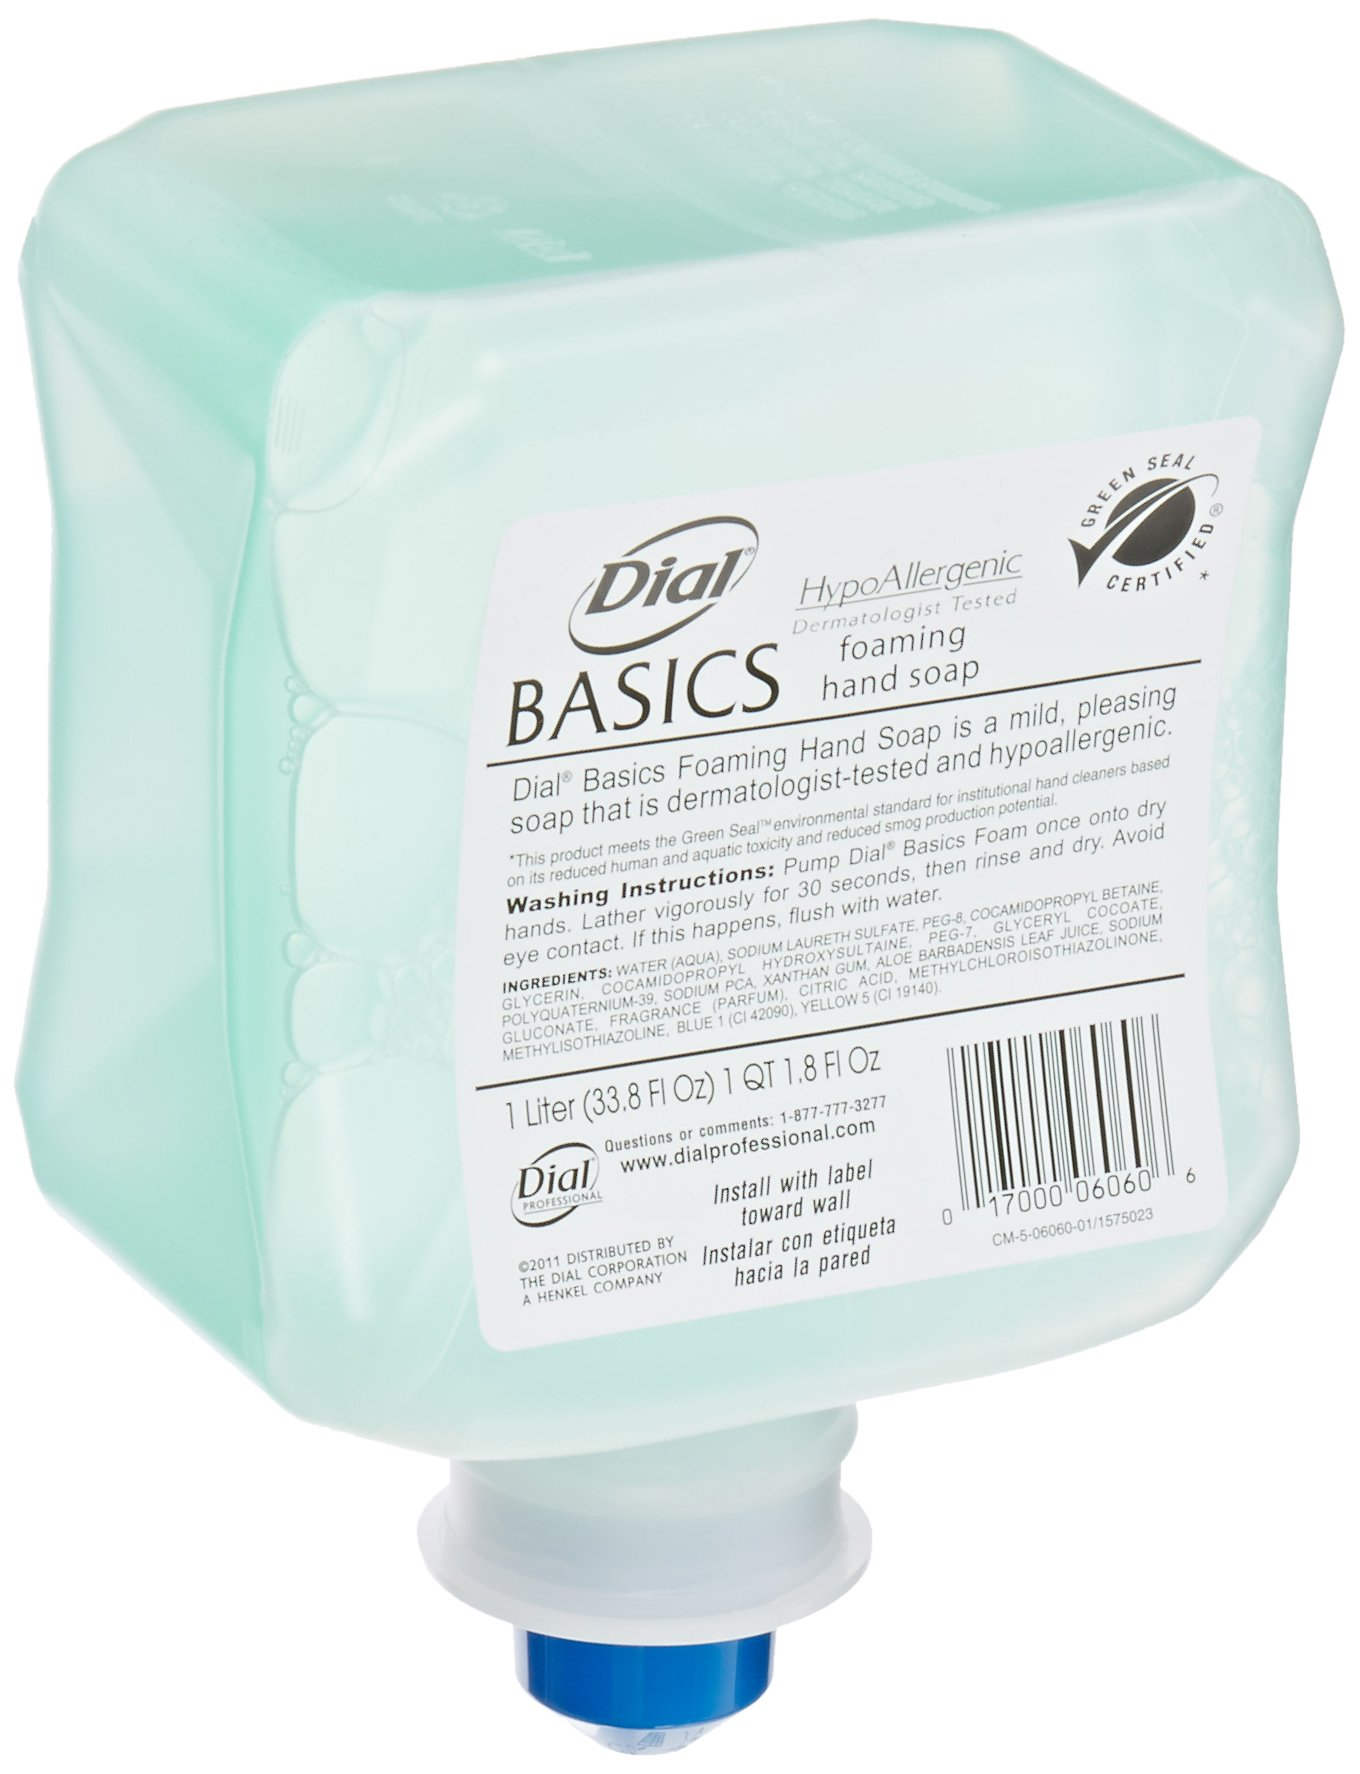 Dial 1324680 Basics Hypoallergenic Foaming Hand Lotion Soap, 1 Liter Refill (Pack of 6) by Dial (Image #2)